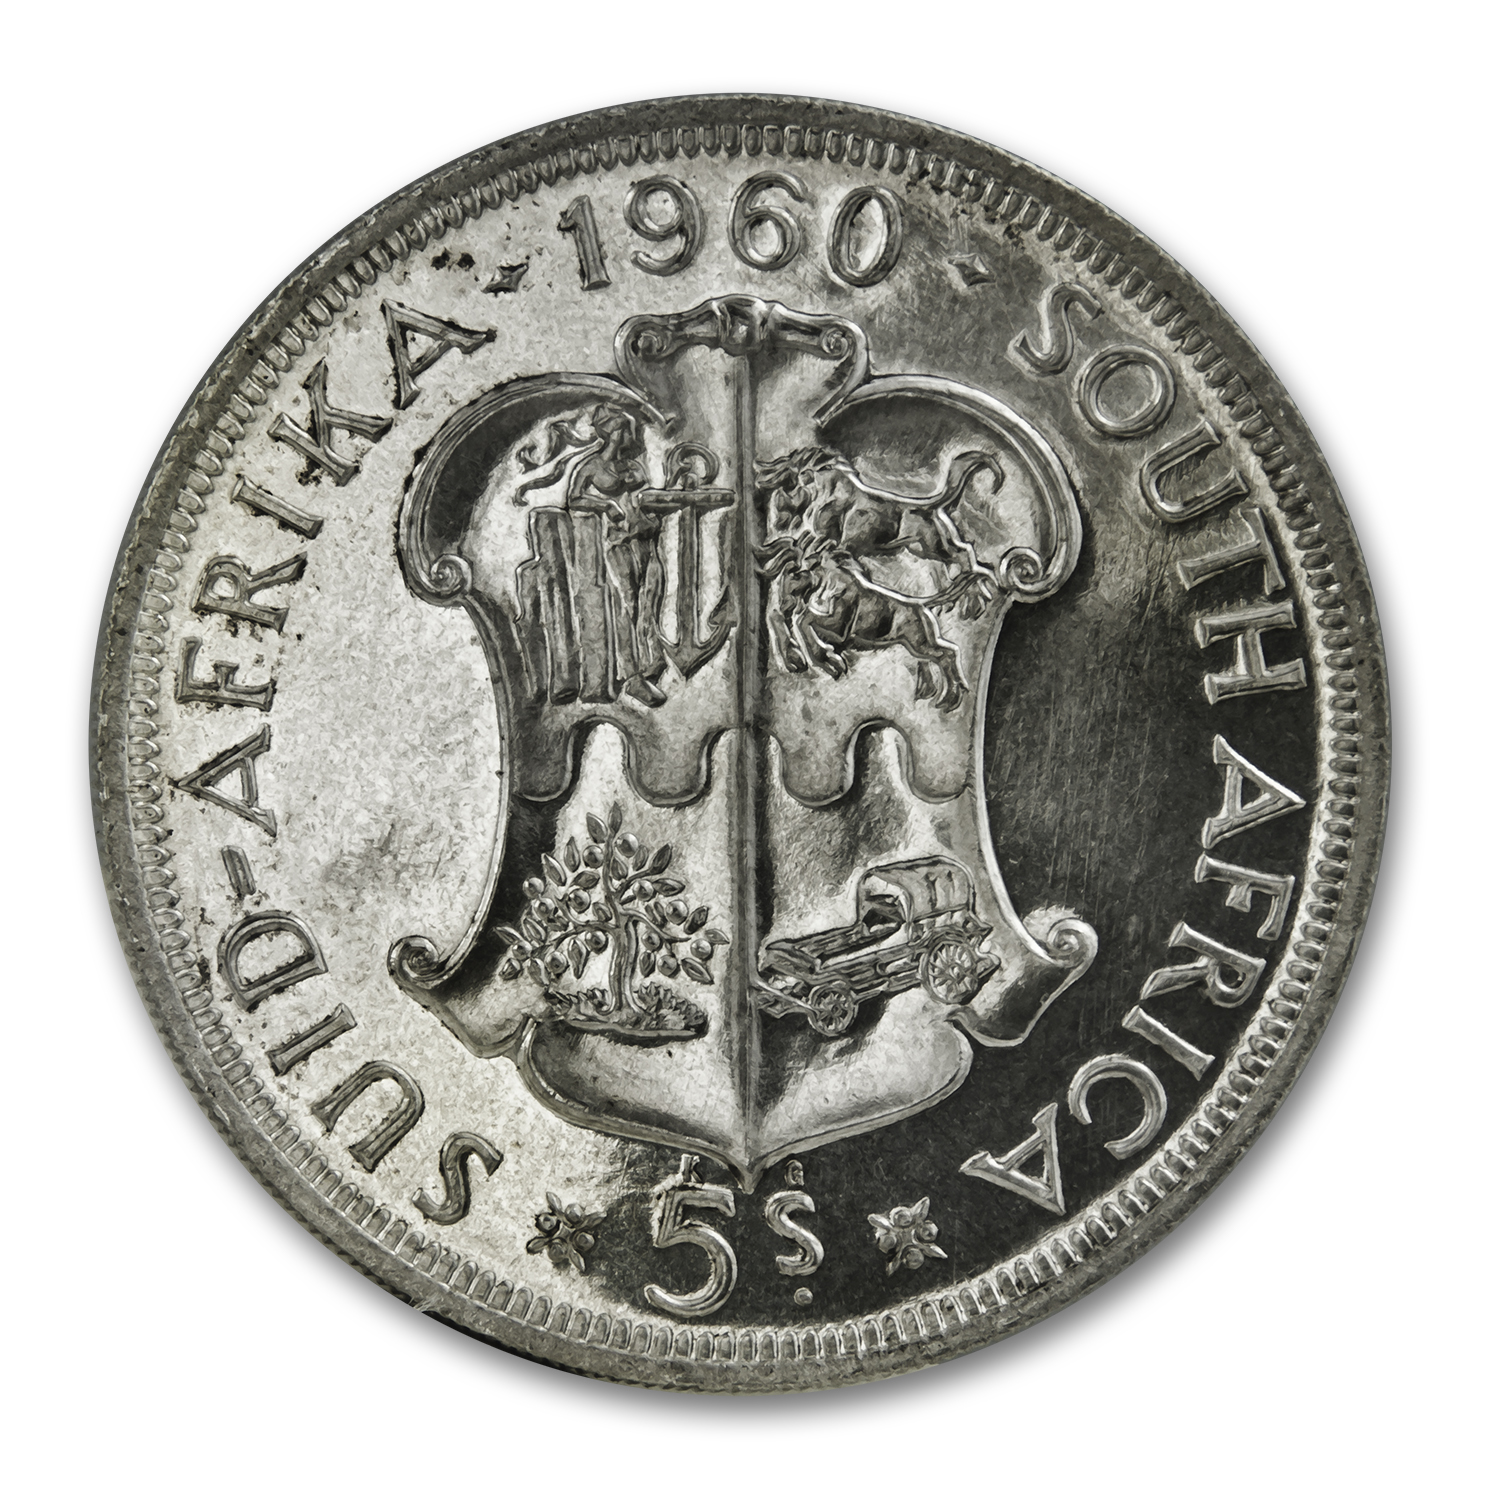 1960 South Africa Silver 5 Shillings Proof-Like